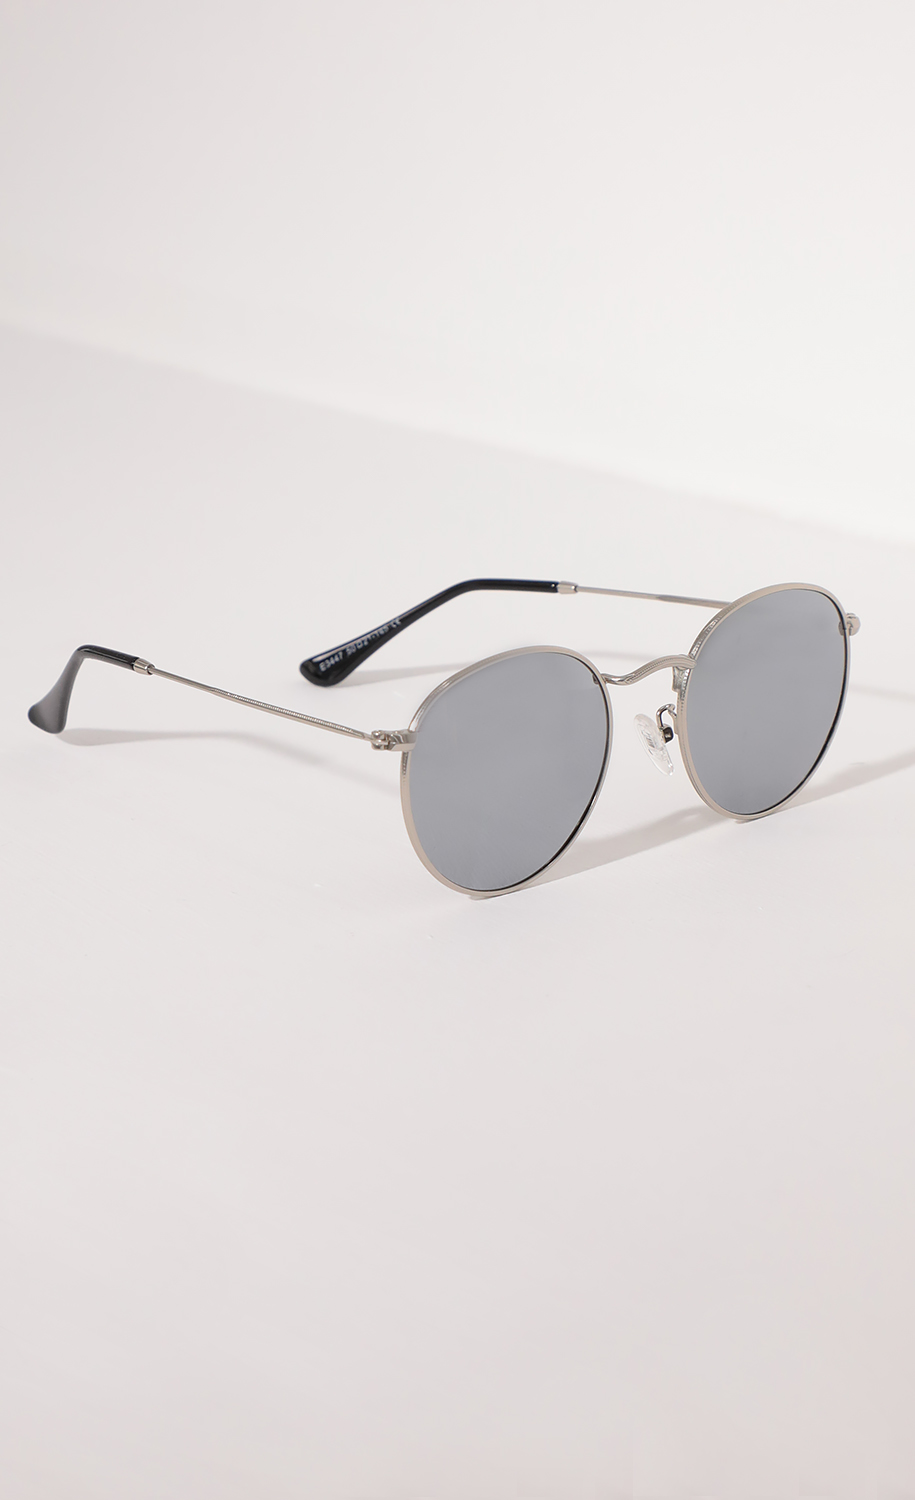 Jessica Round Trim Sunglasses in Silver and Mirrored Lenses